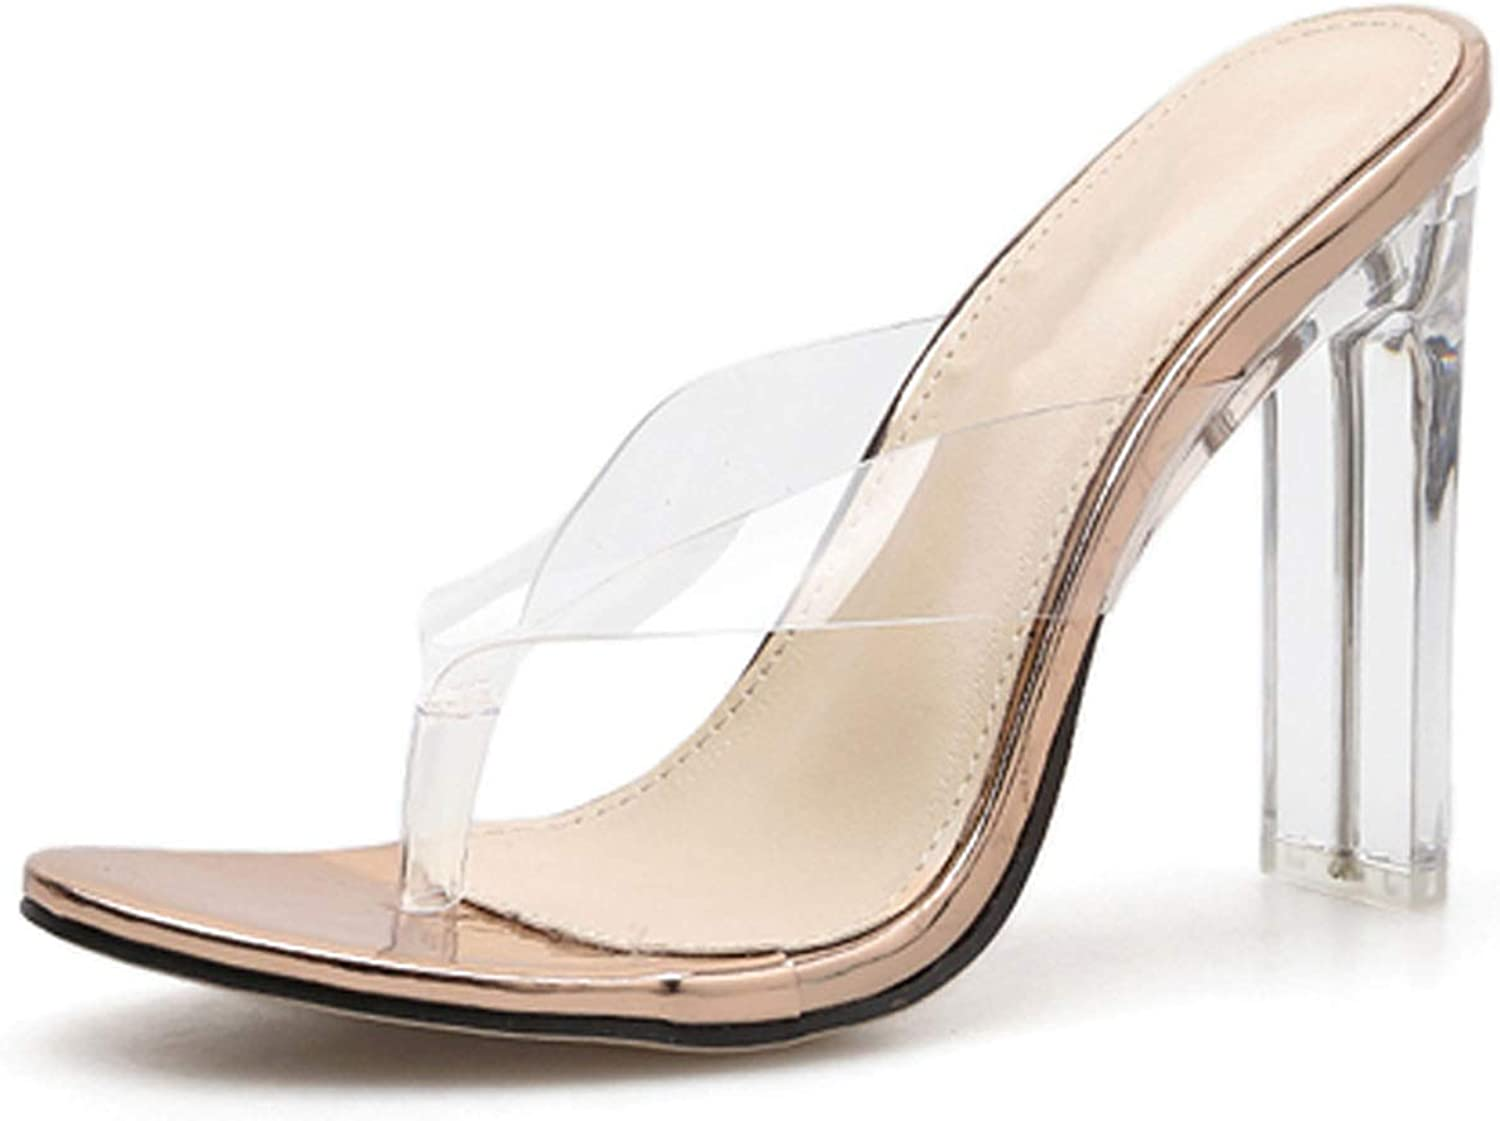 IOJHOIJOIJOIJMO 2019 PVC Jelly Champagne Silver Crystal Sexytransparent Heel Sandals Flip Flops Pumps